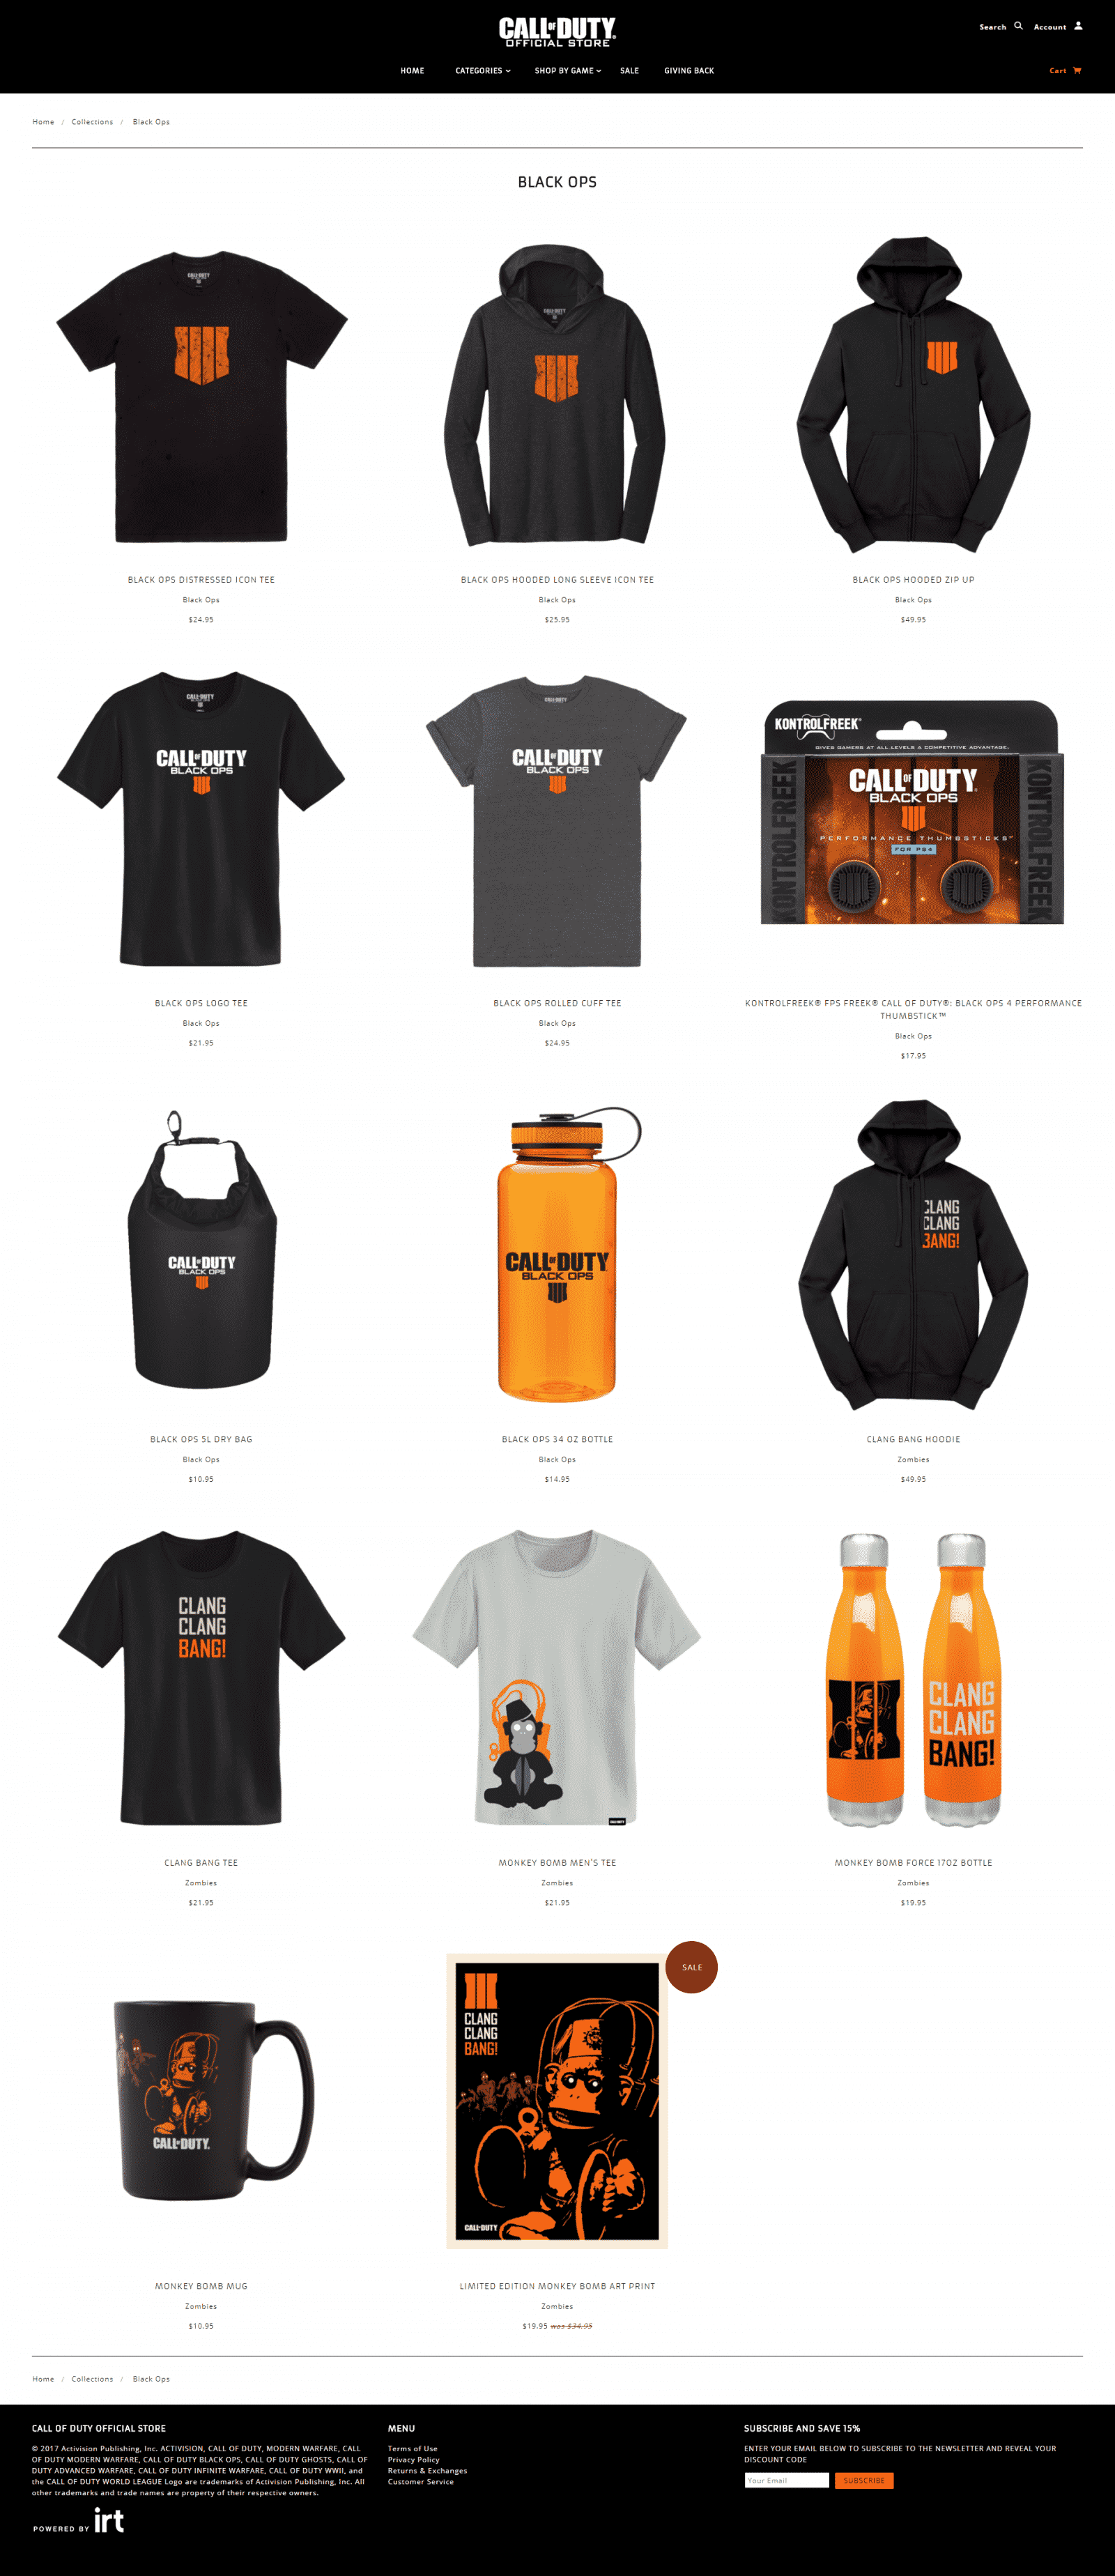 Black Ops 4 Blackout Gear Call of Duty Official Store Apparel